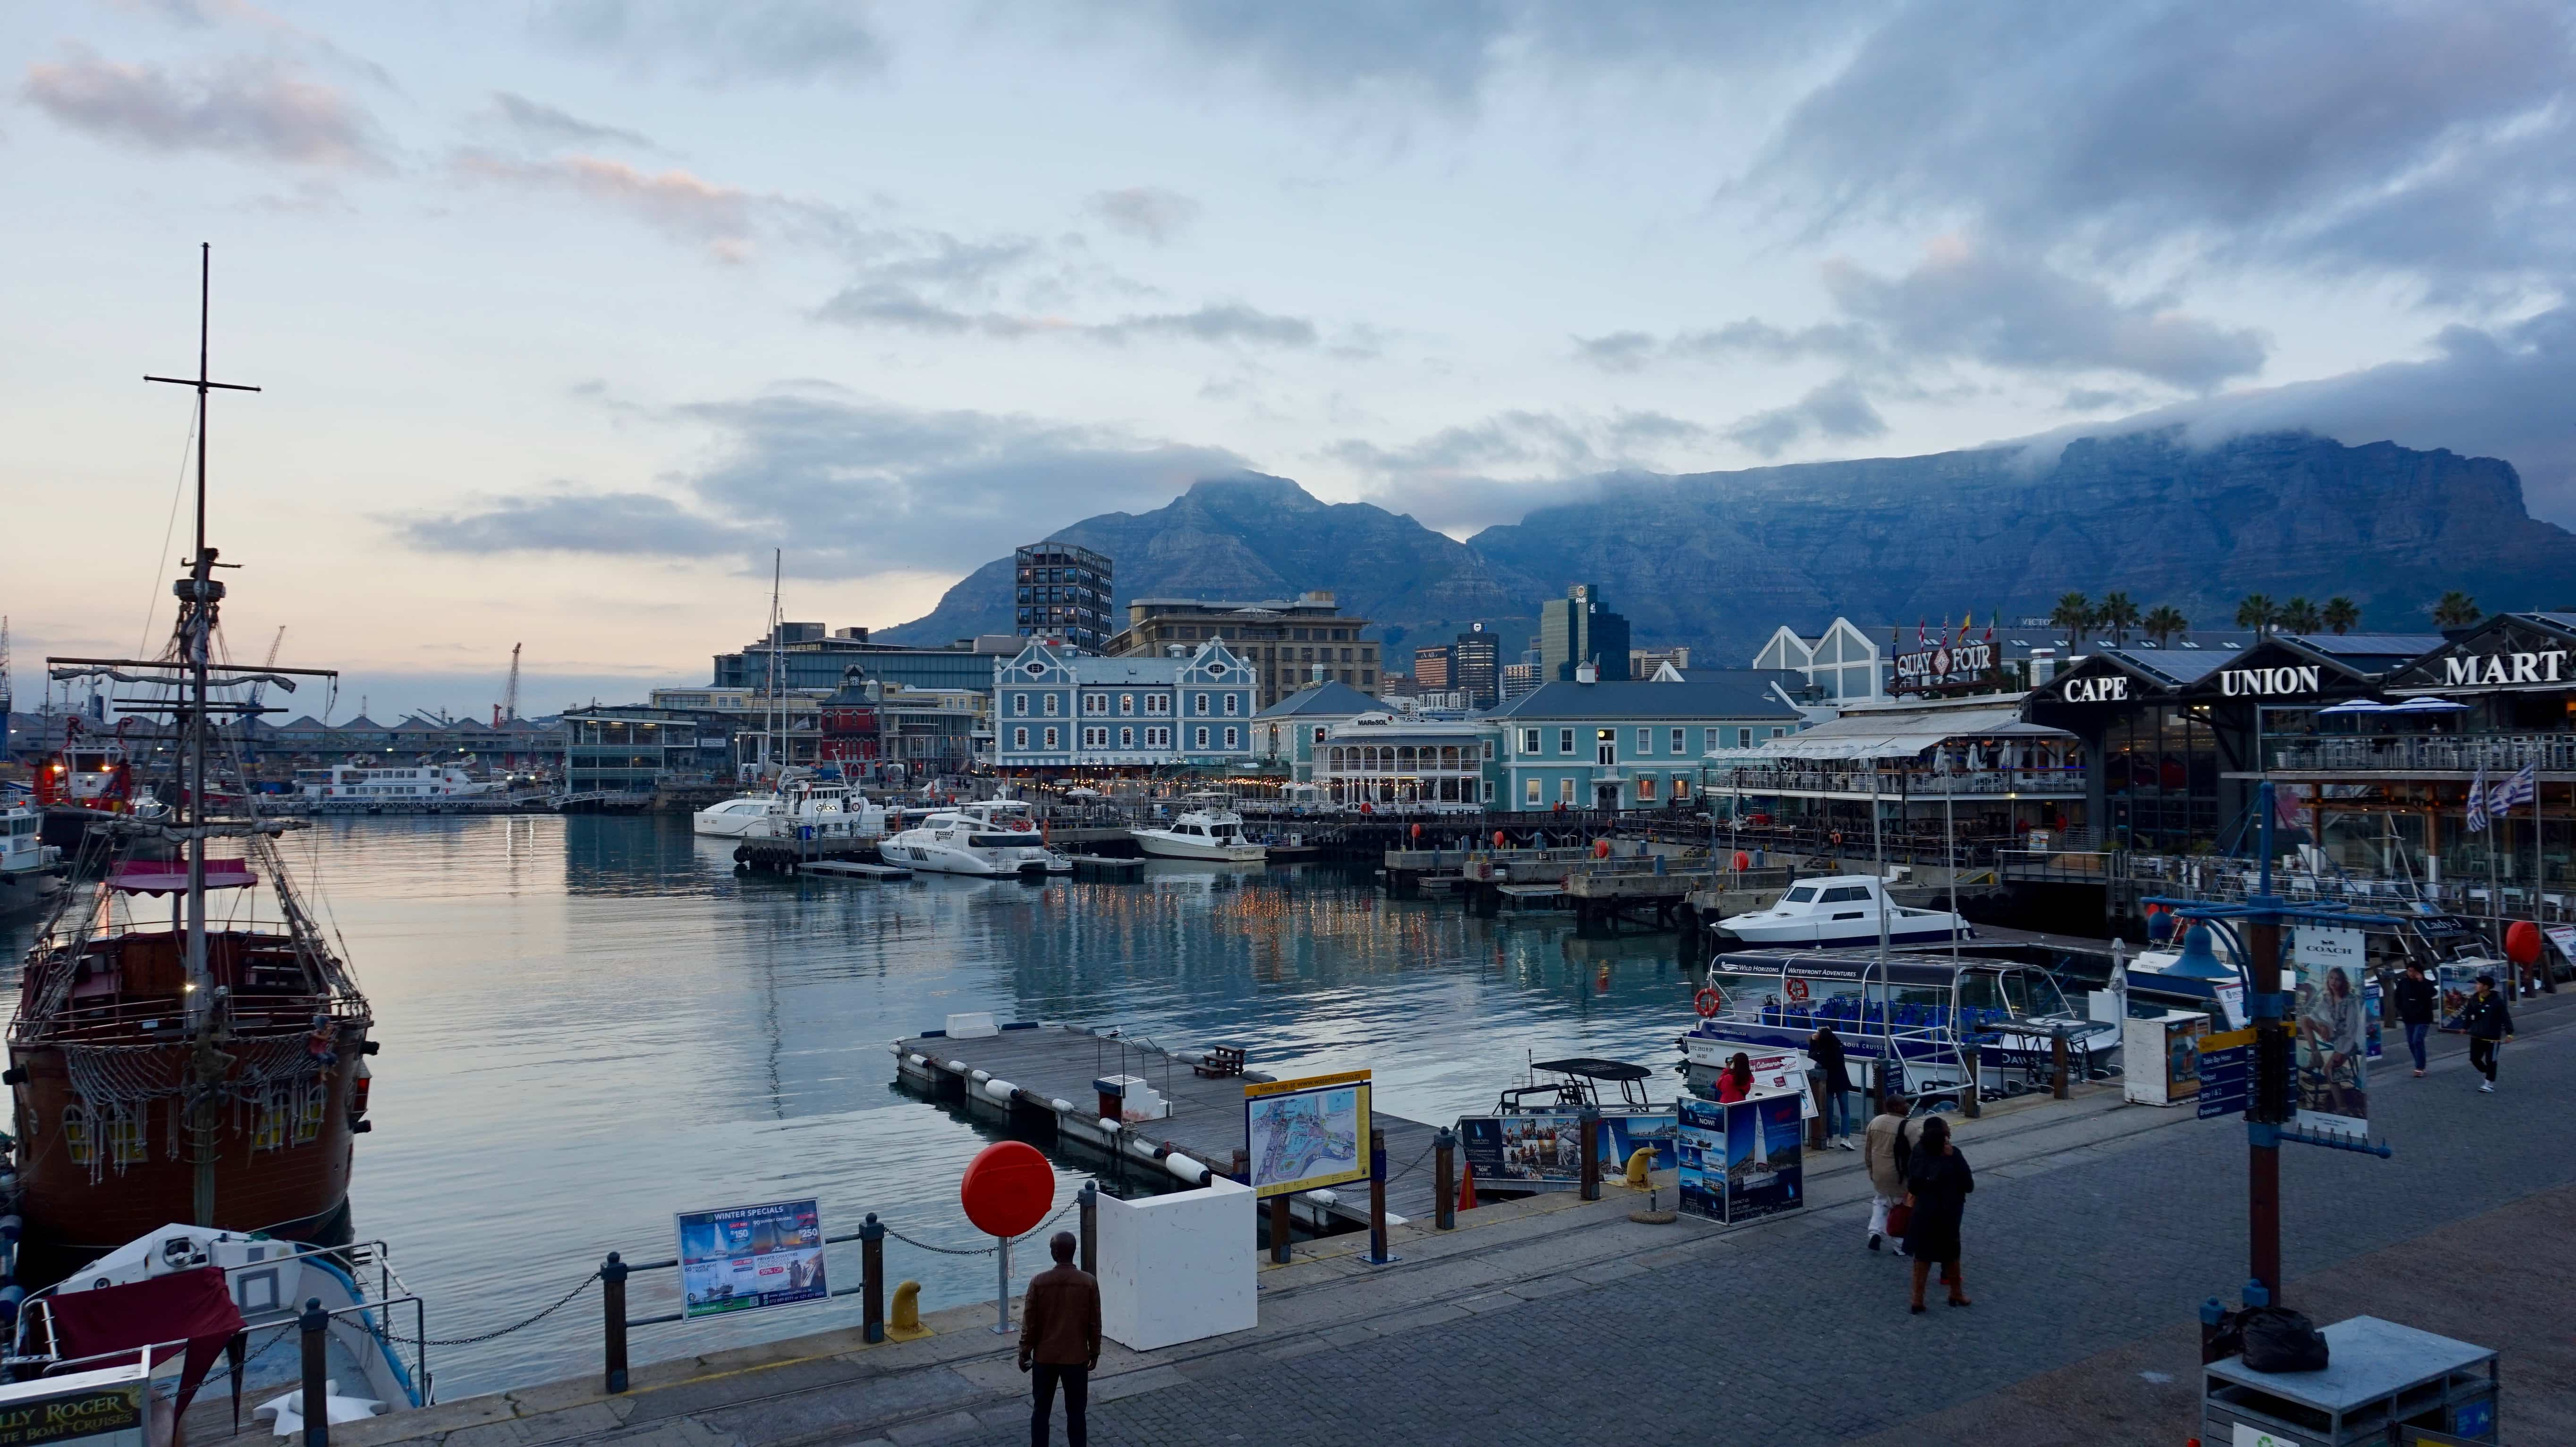 The Victoria and Alfred waterfront in Cape Town